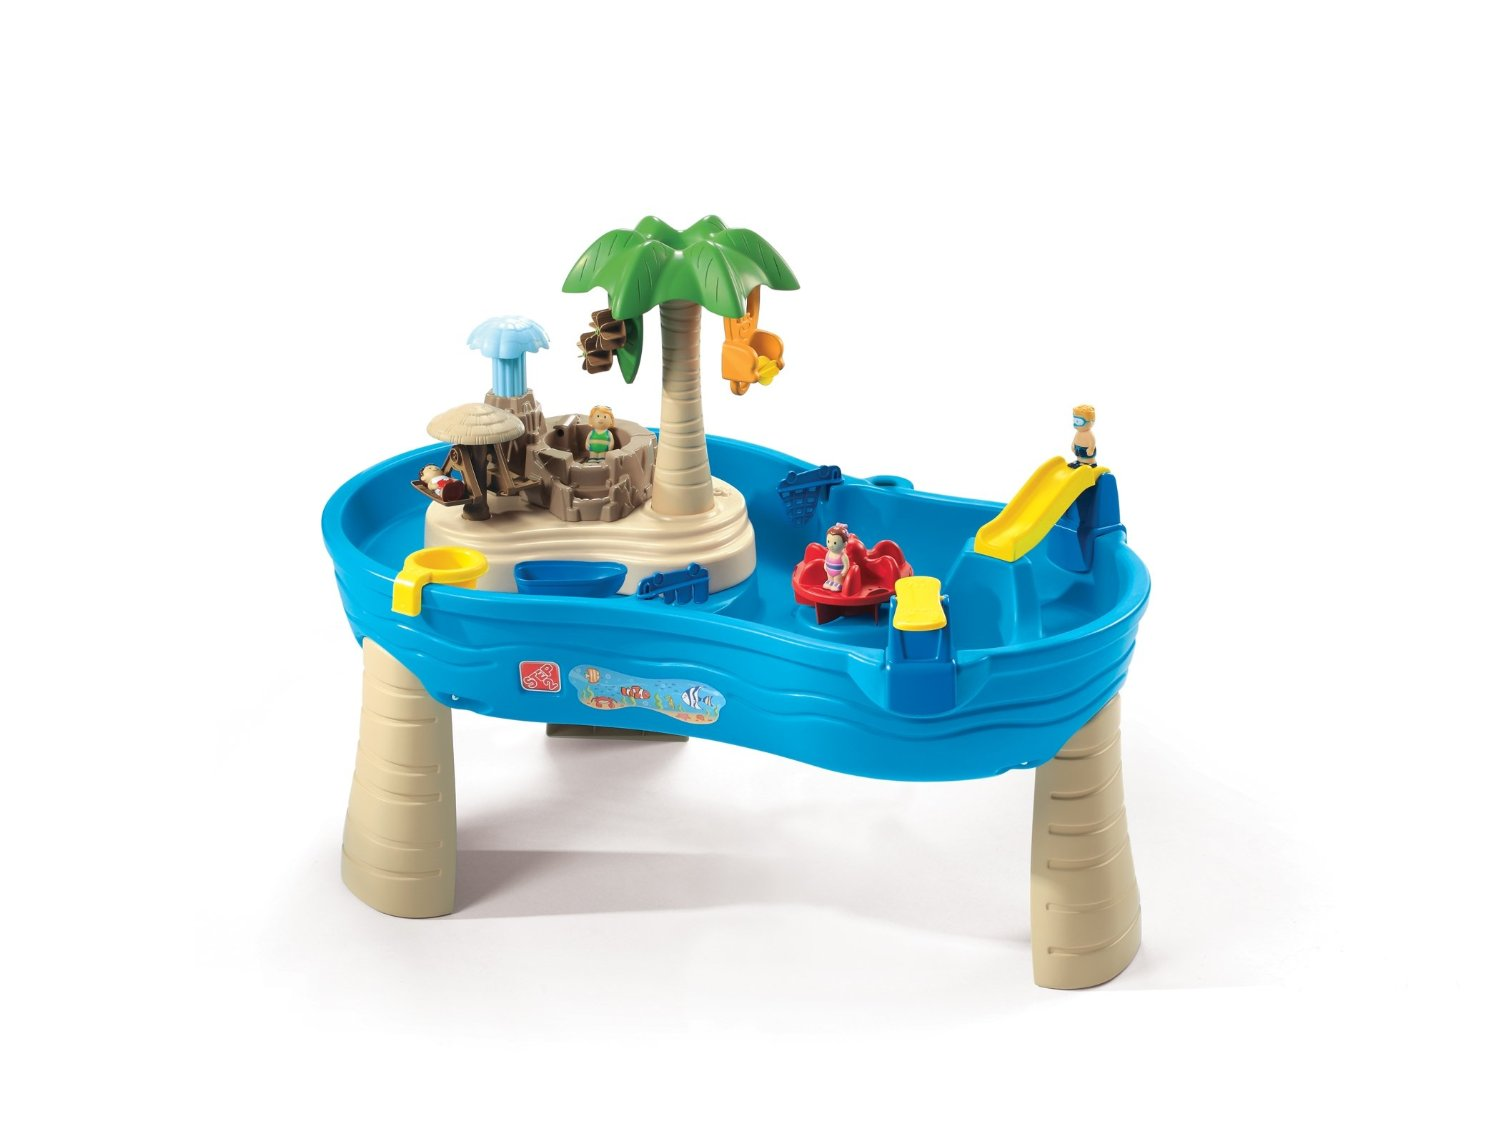 Play Toys For Boys : Buy outdoor play equipment online at kids kouch india